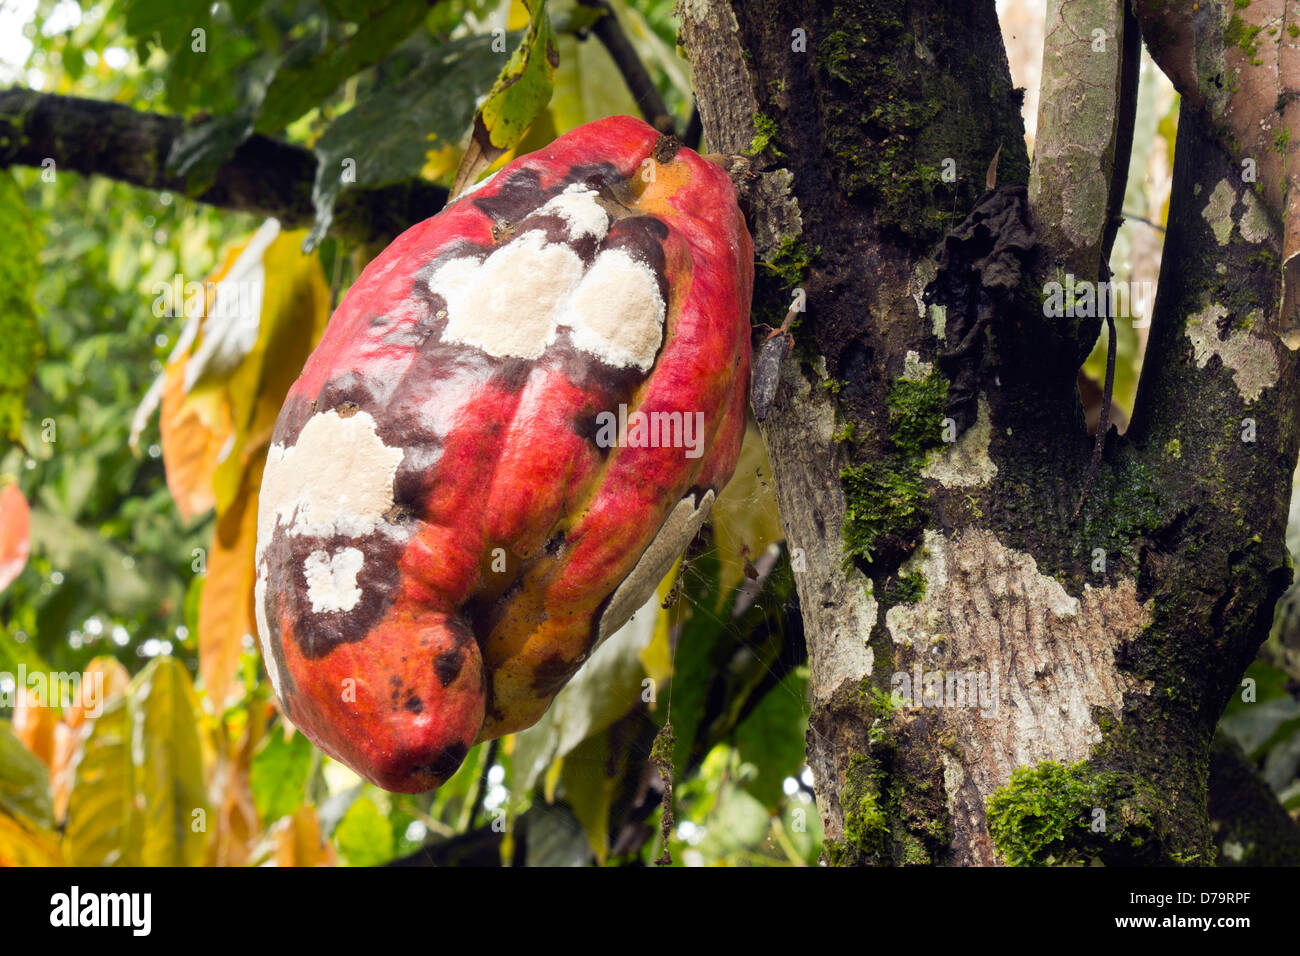 Cocoa pod infected with Frosty Pod Disease caused by the basidiomycete fungus Moniliophthora roreri, Ecuador - Stock Image